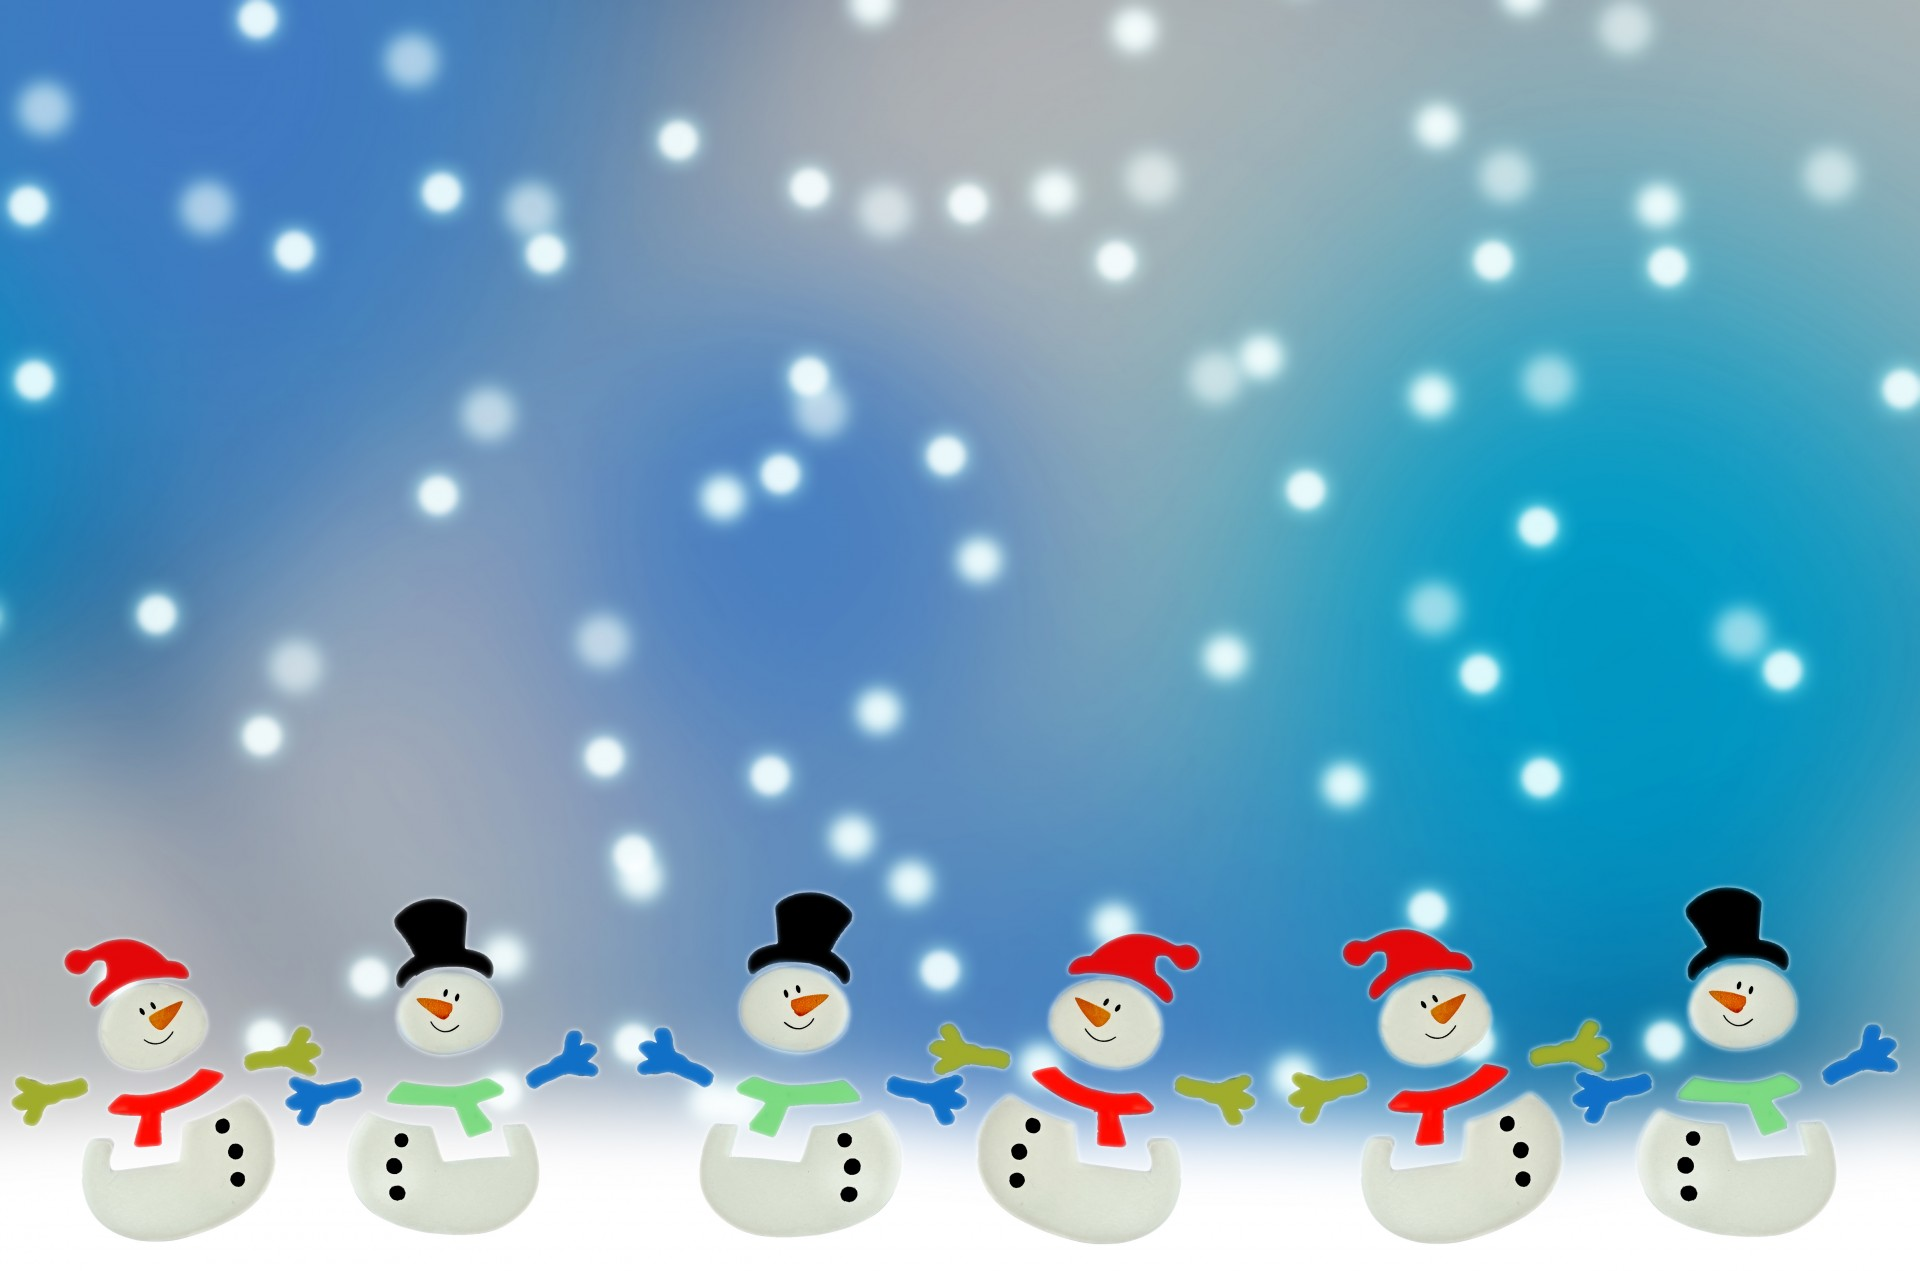 Download Cute Images For Wallpaper Snowman Free Stock Photo Public Domain Pictures